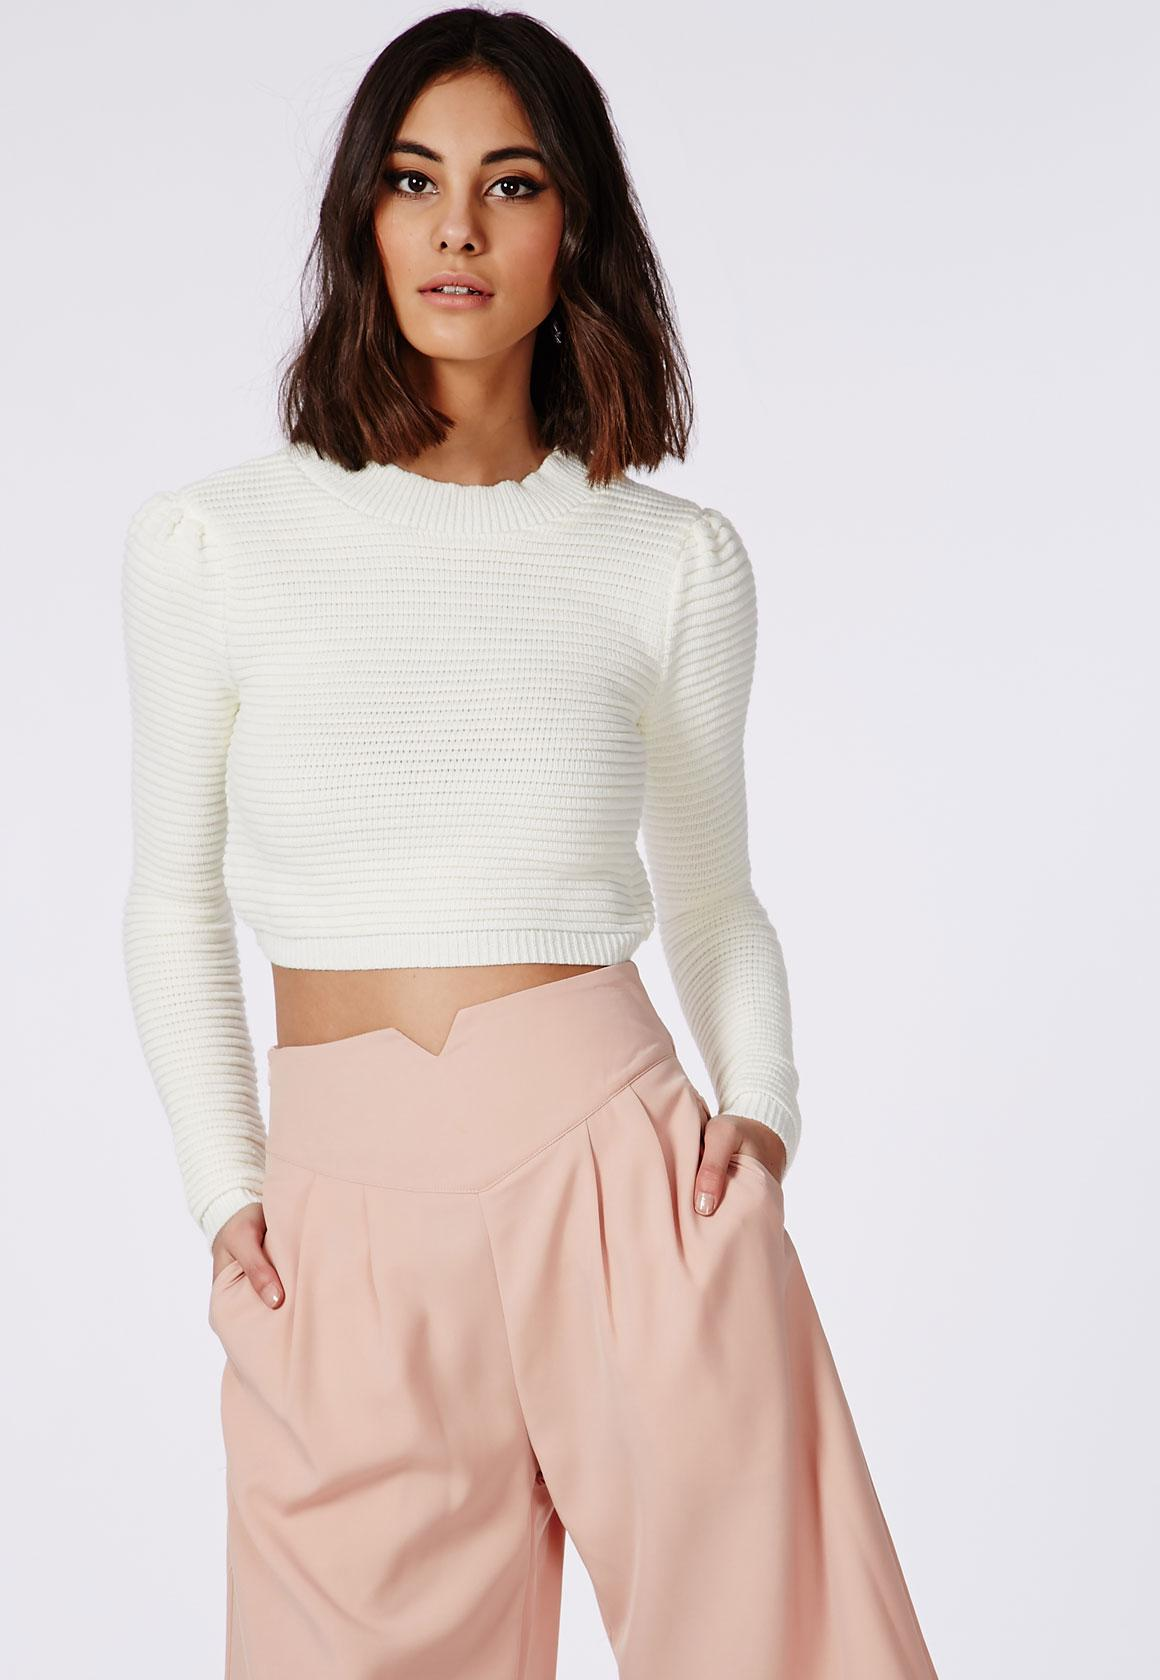 Sale Manchester Great Sale Cheapest Cheap Online Missguided Knitted cropped Jumper bzTCAXCw4s